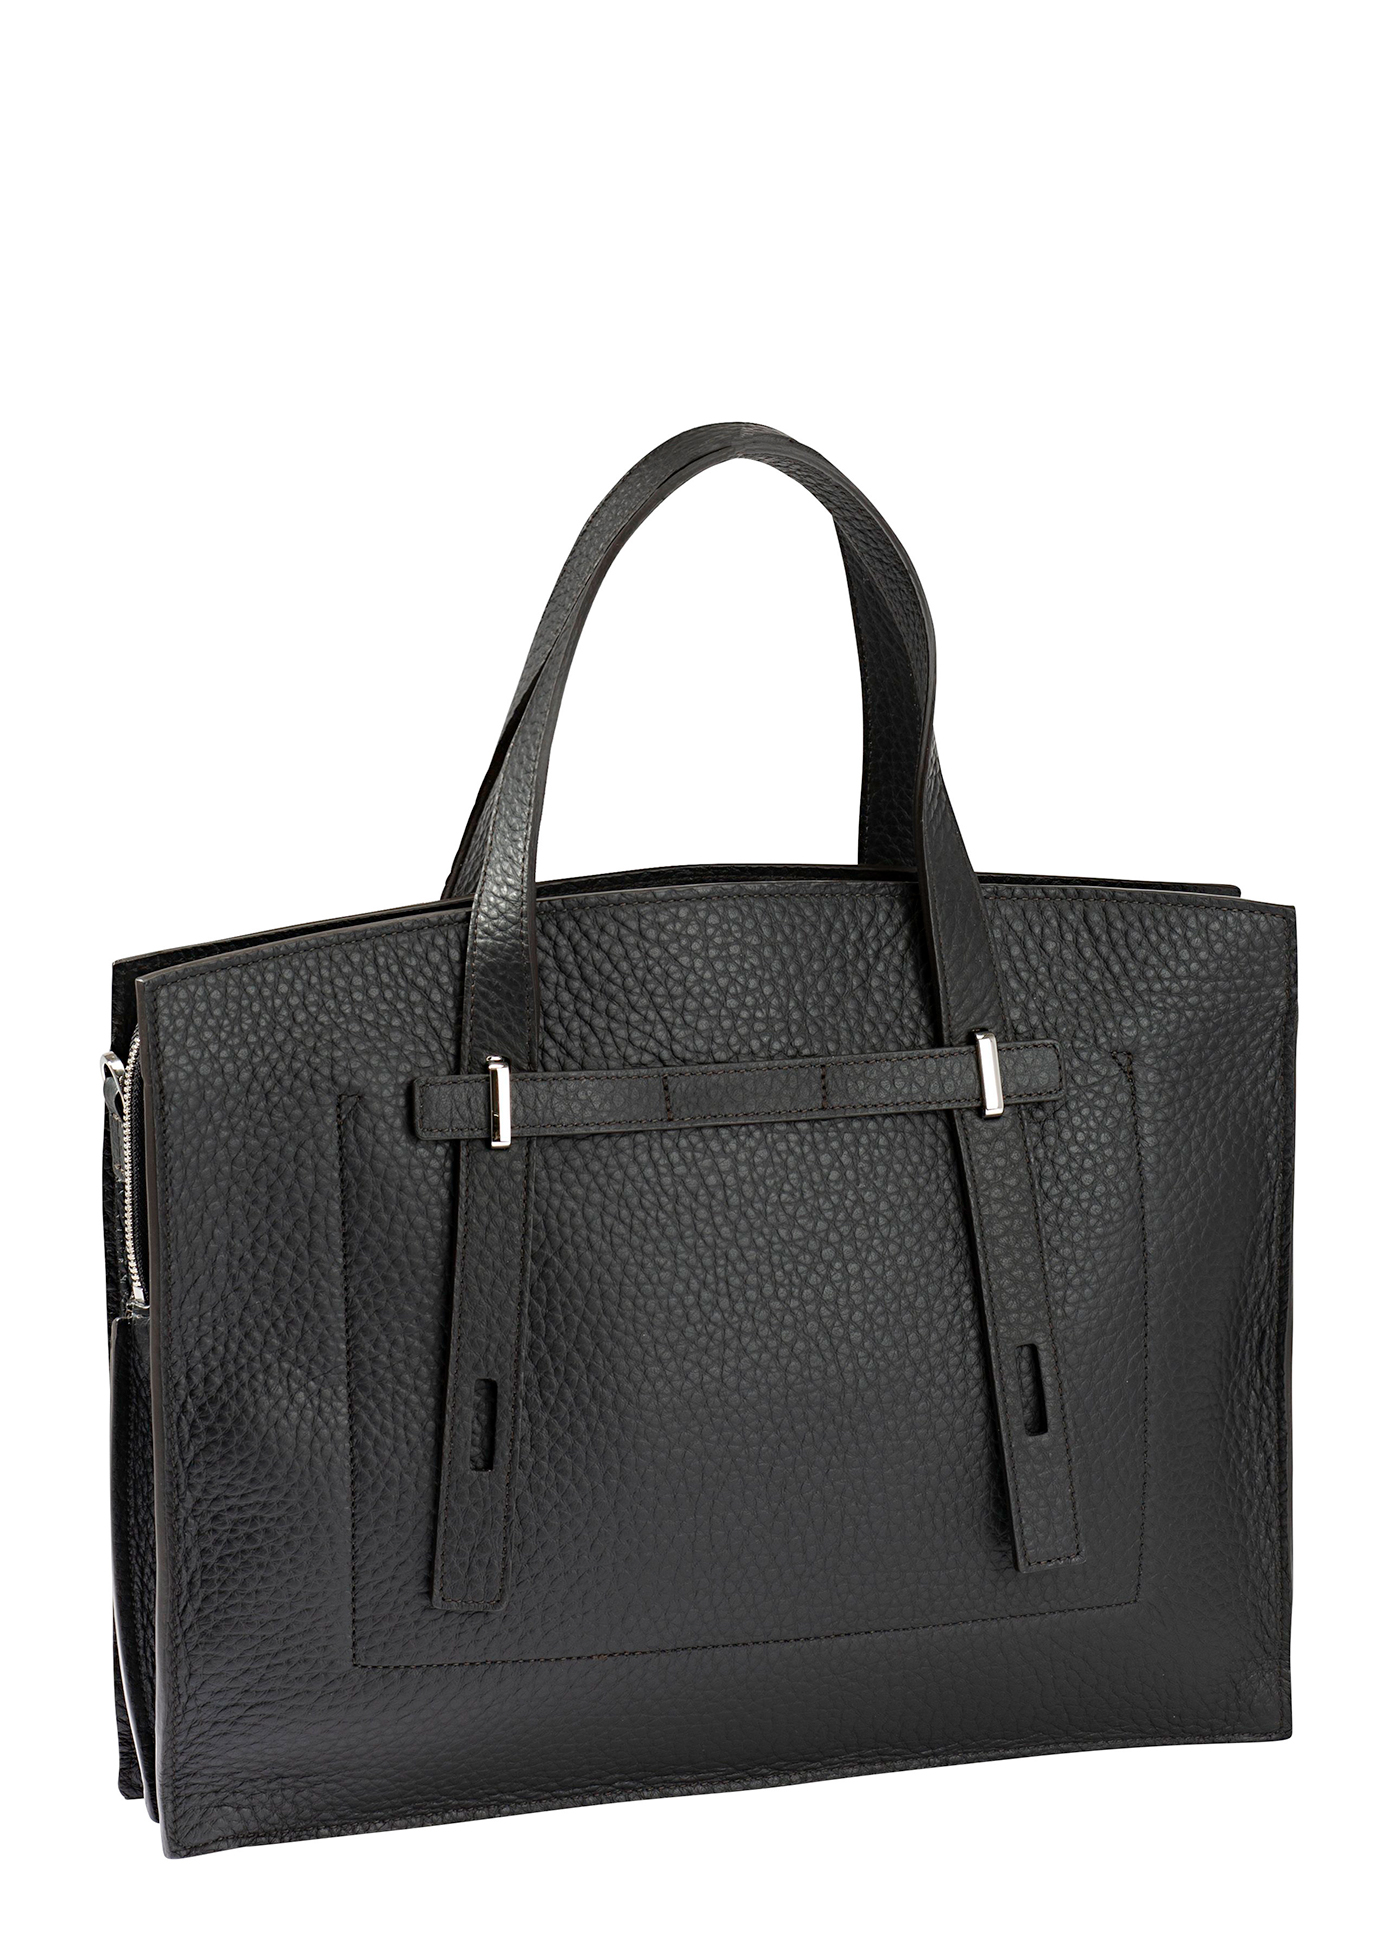 MAN GIOVE L BRIEFCASE image number 1